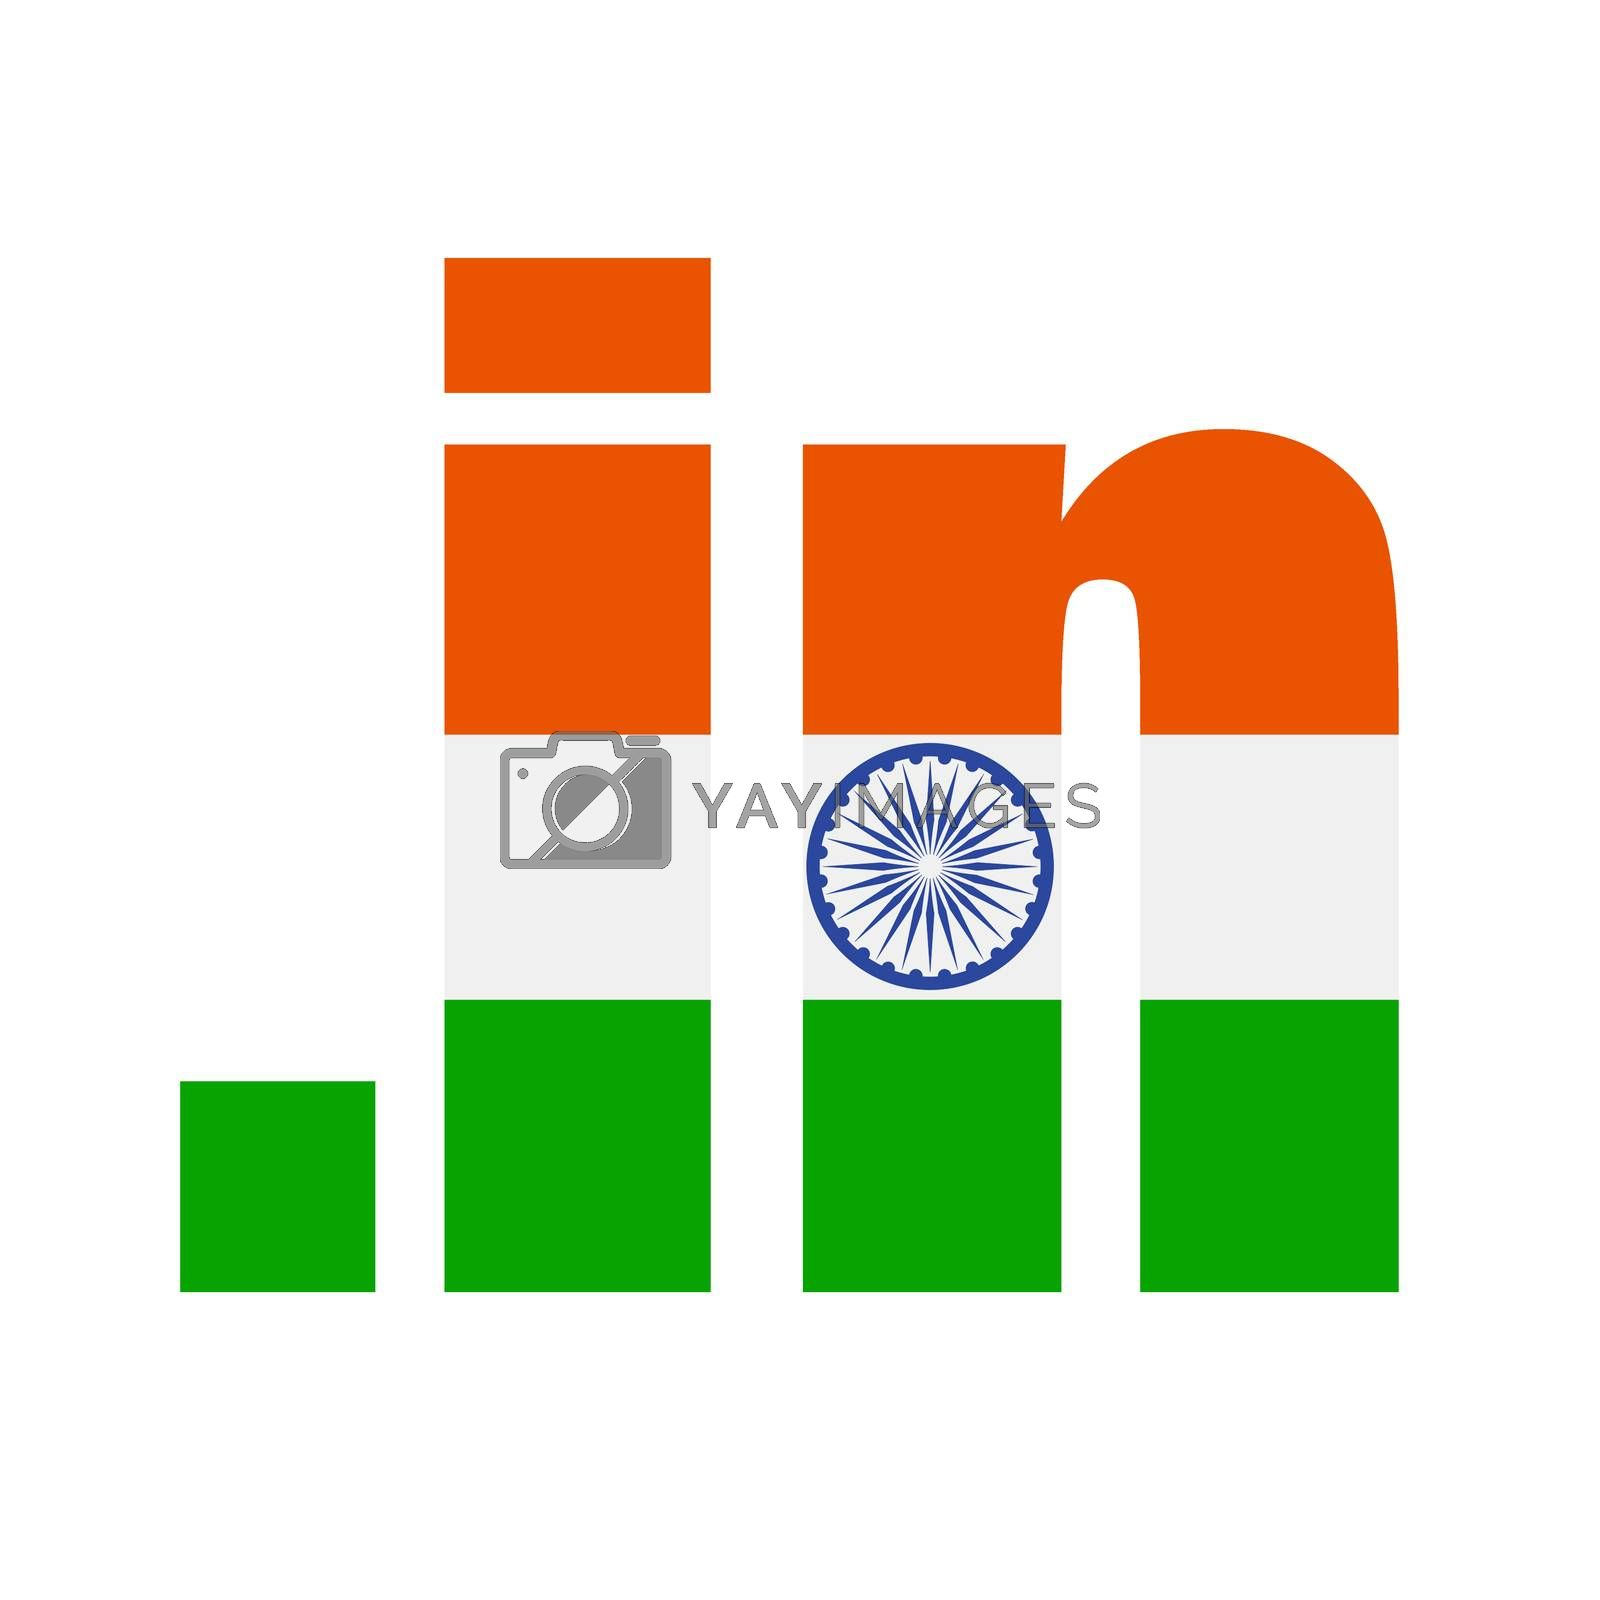 .in domain registry logo meant for registrations of Indian domains